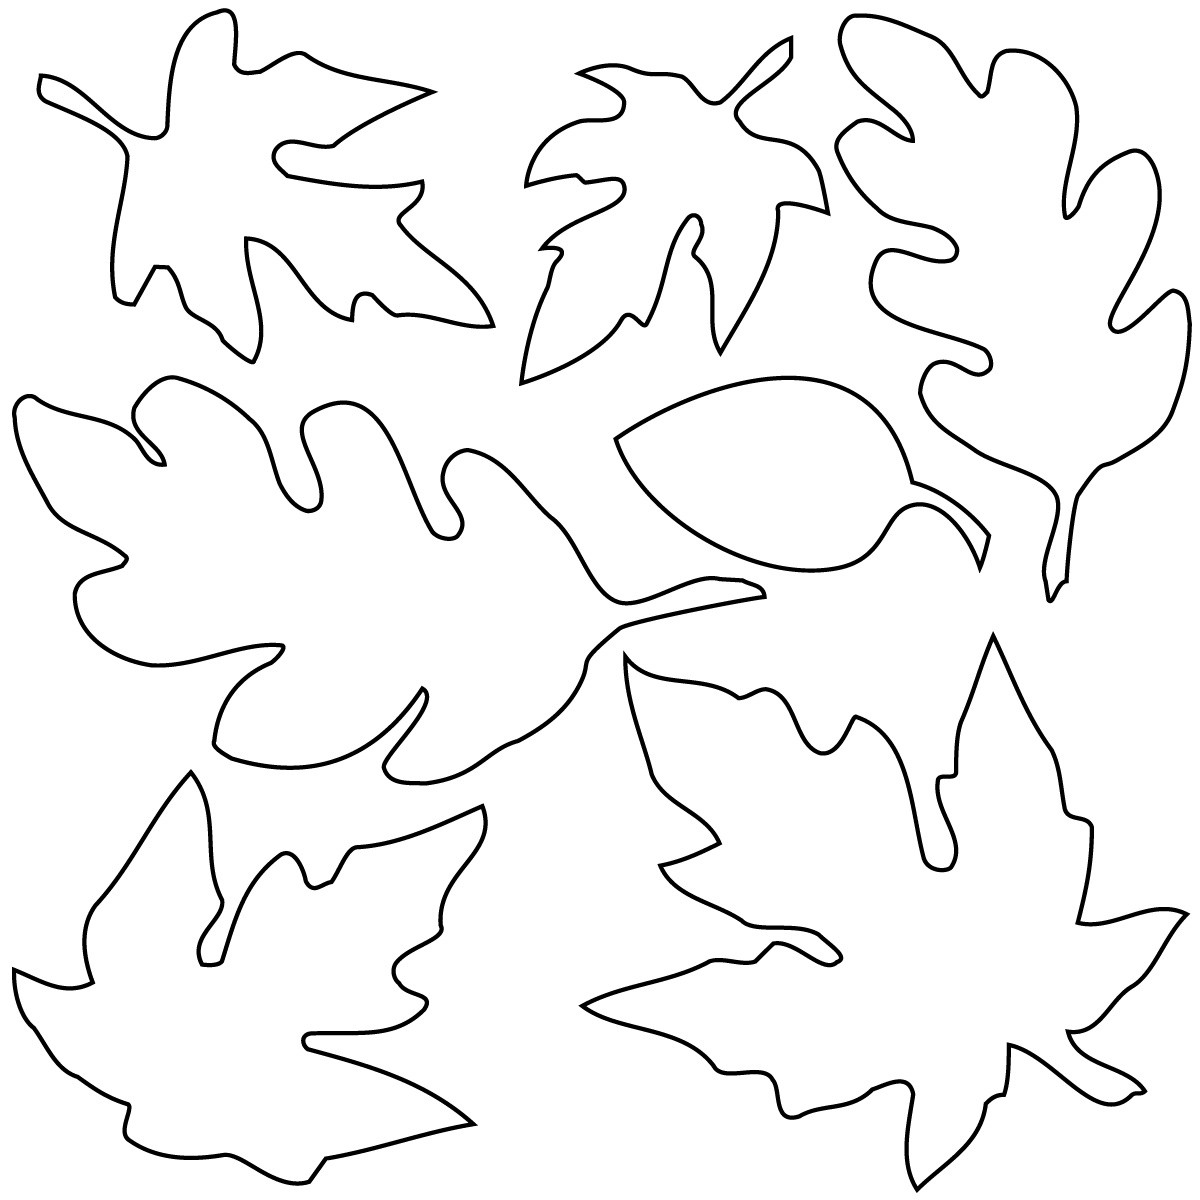 Fall Leaves Coloring Sheet  Clip Art Fall Leaves coloring page